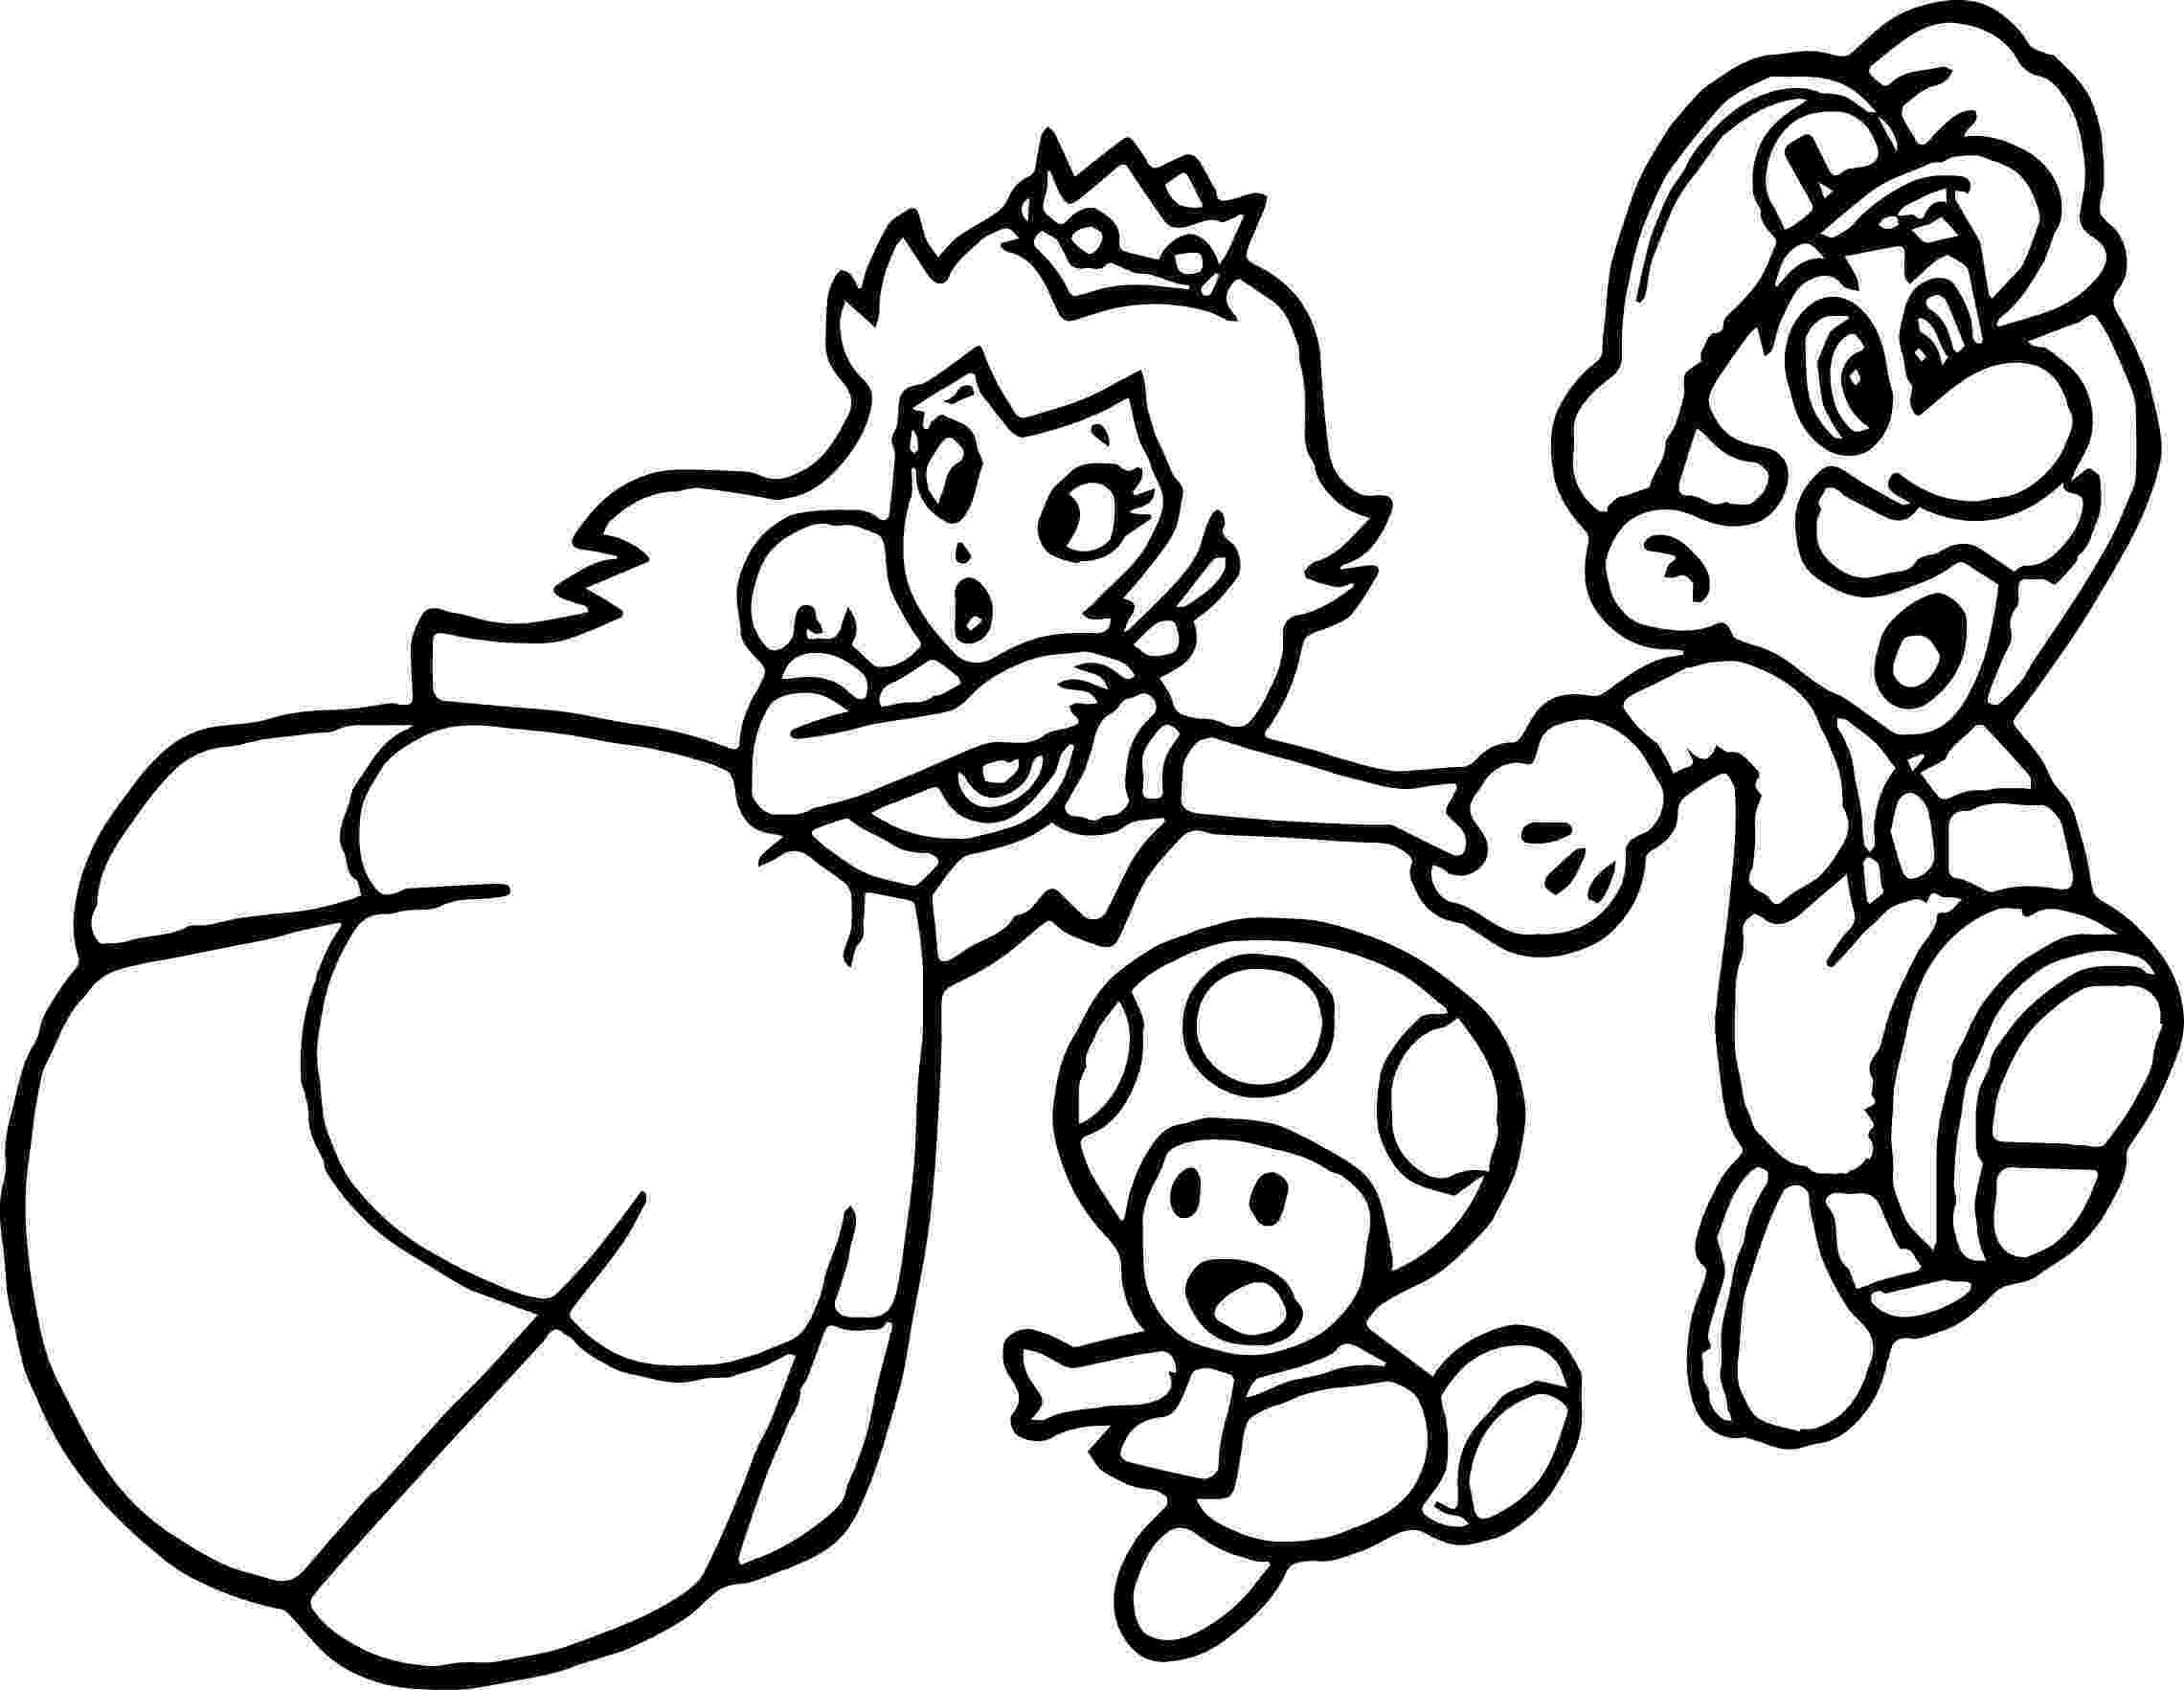 super mario bros printable coloring pages super mario princess mushroom coloring page super mario super printable bros mario coloring pages